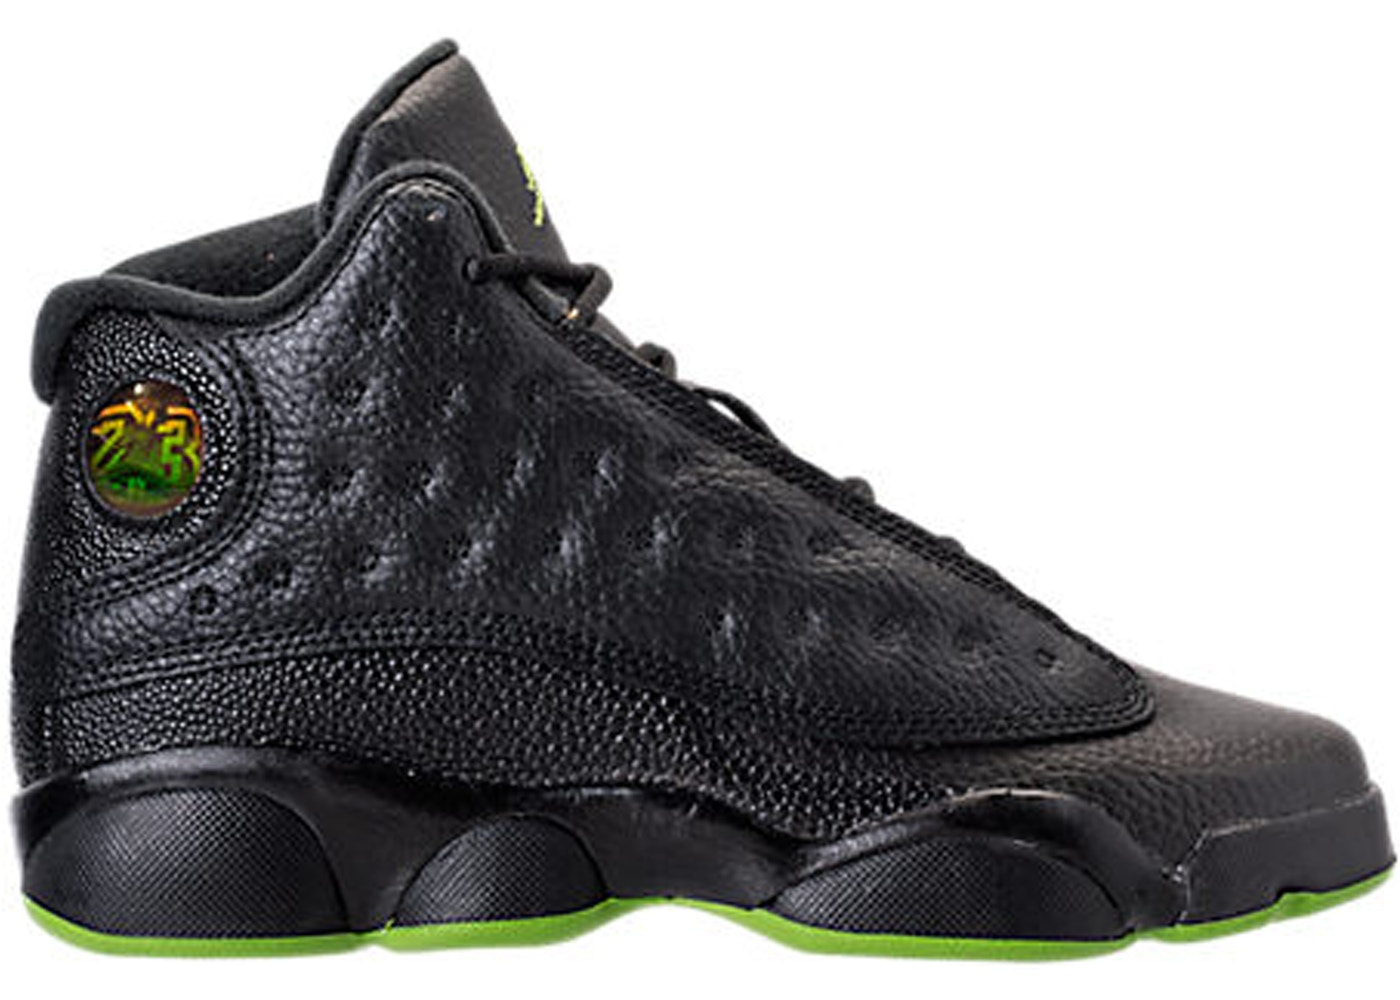 new concept a4678 27225 Jordan 13 Retro Altitude 2017 (GS) - 414574-042